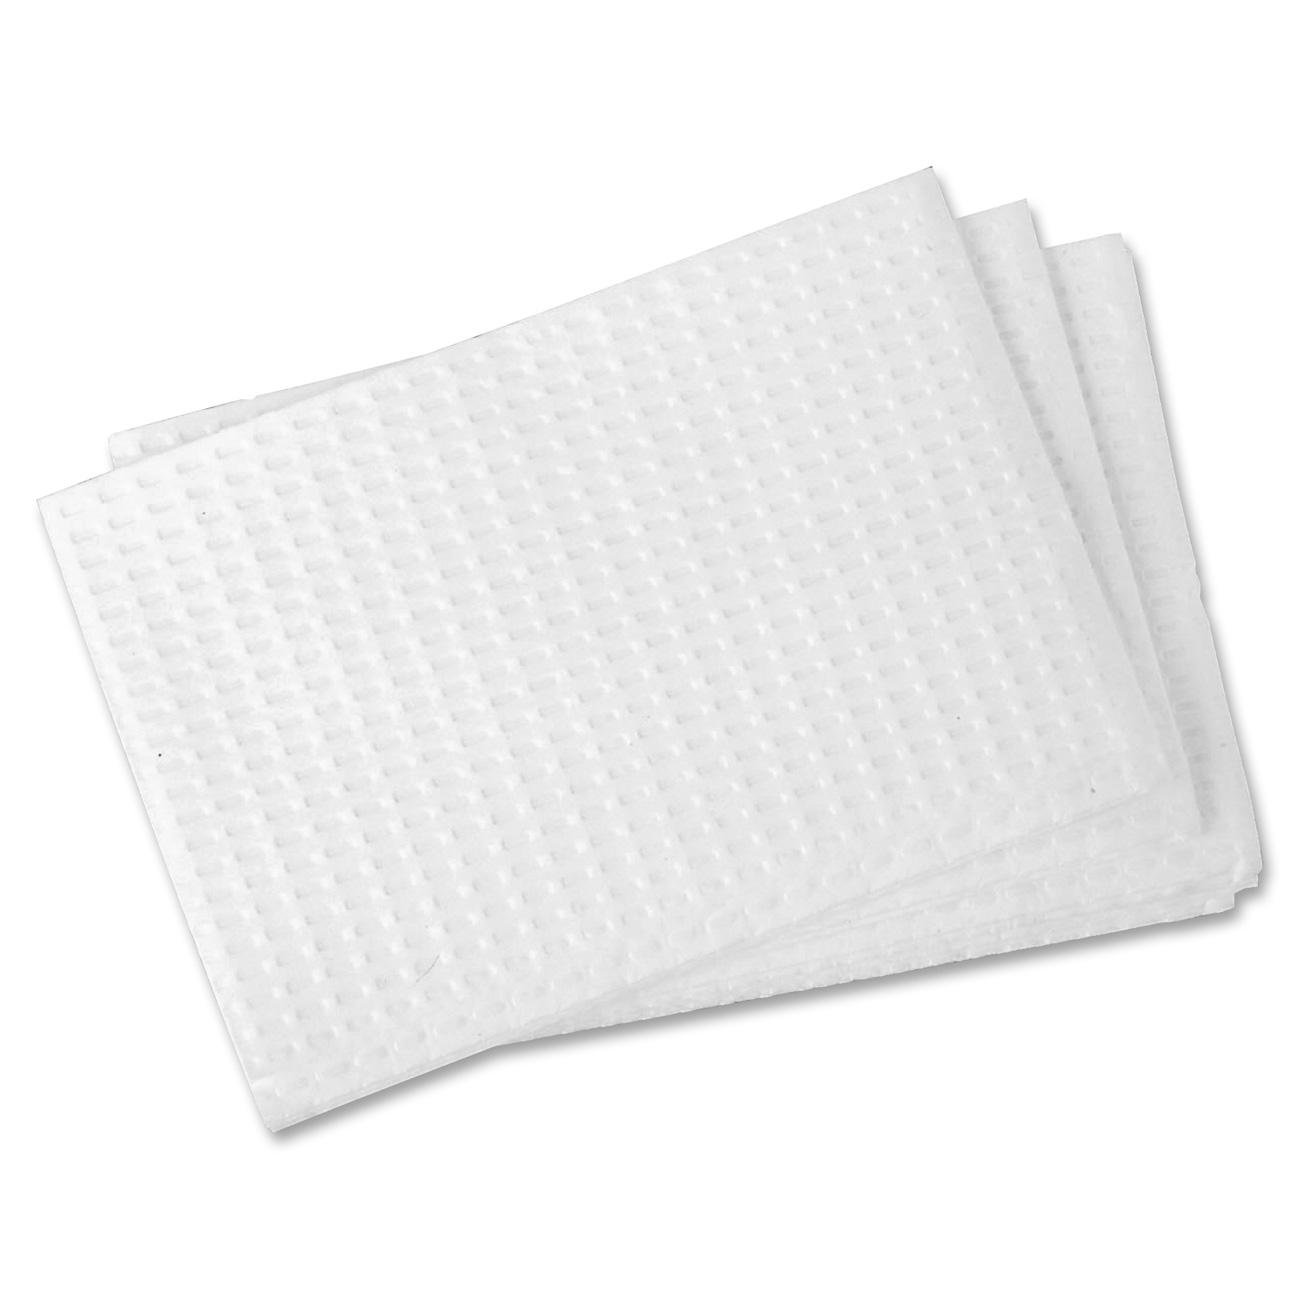 RCM25130288 - RMC Changing Table Liner